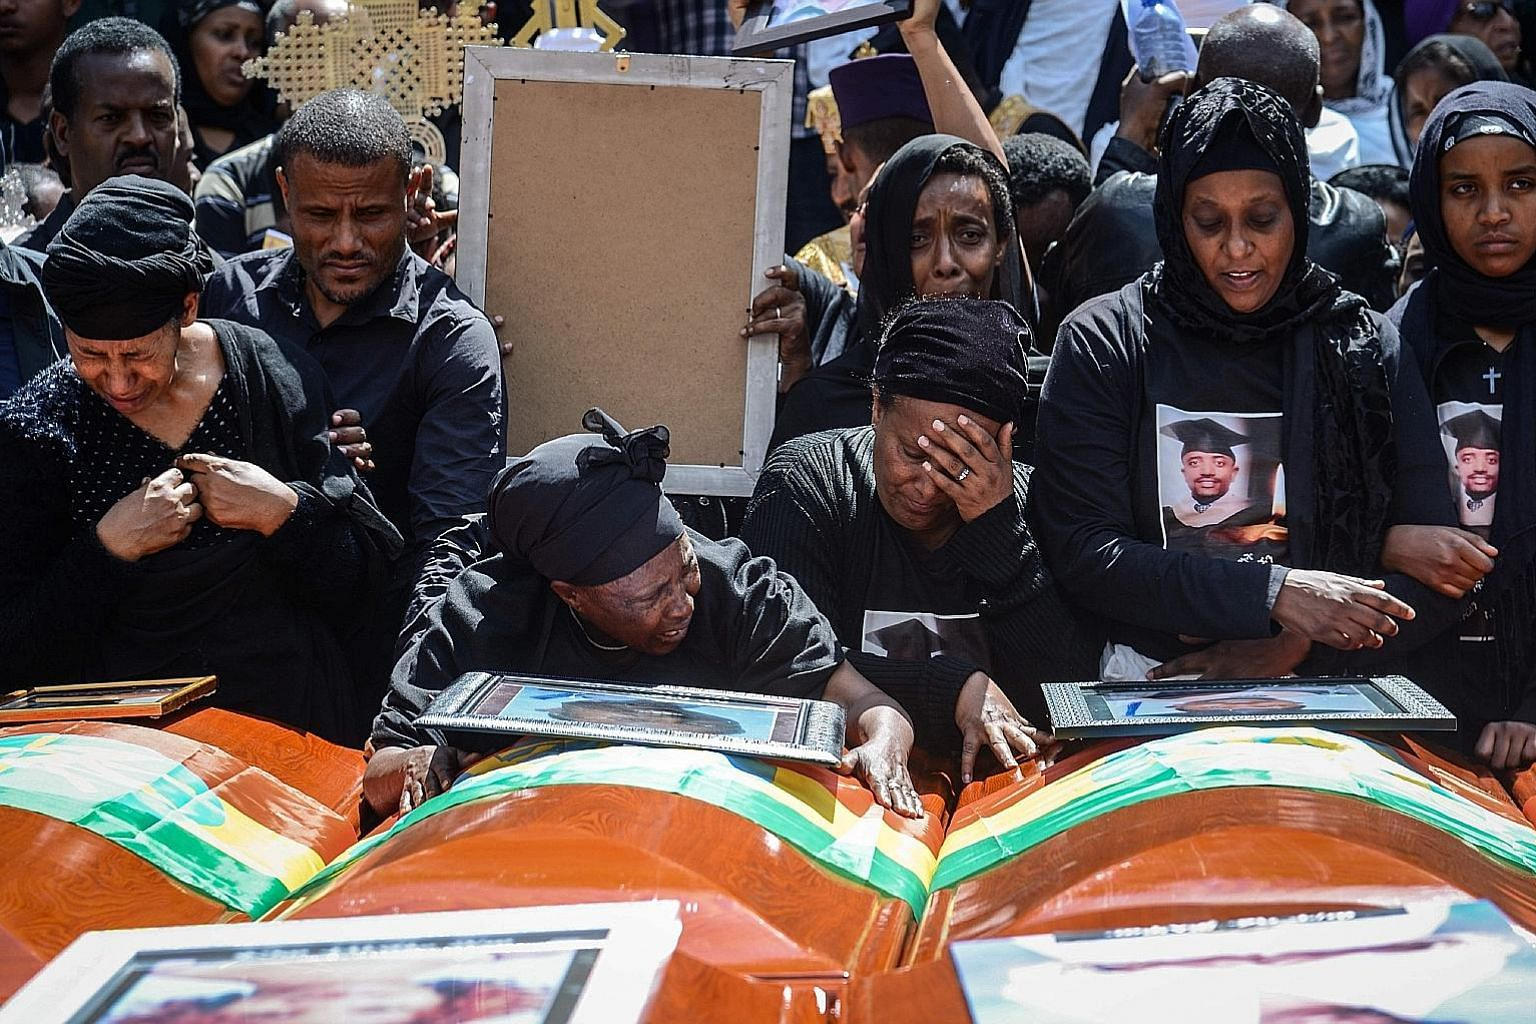 Mourners at a burial service in Addis Ababa, Ethiopia, on Sunday for victims of the March 10 plane crash. Investigations into the crash are ongoing but early evidence has pointed to a problem with the flight stabilisation system designed to prevent s